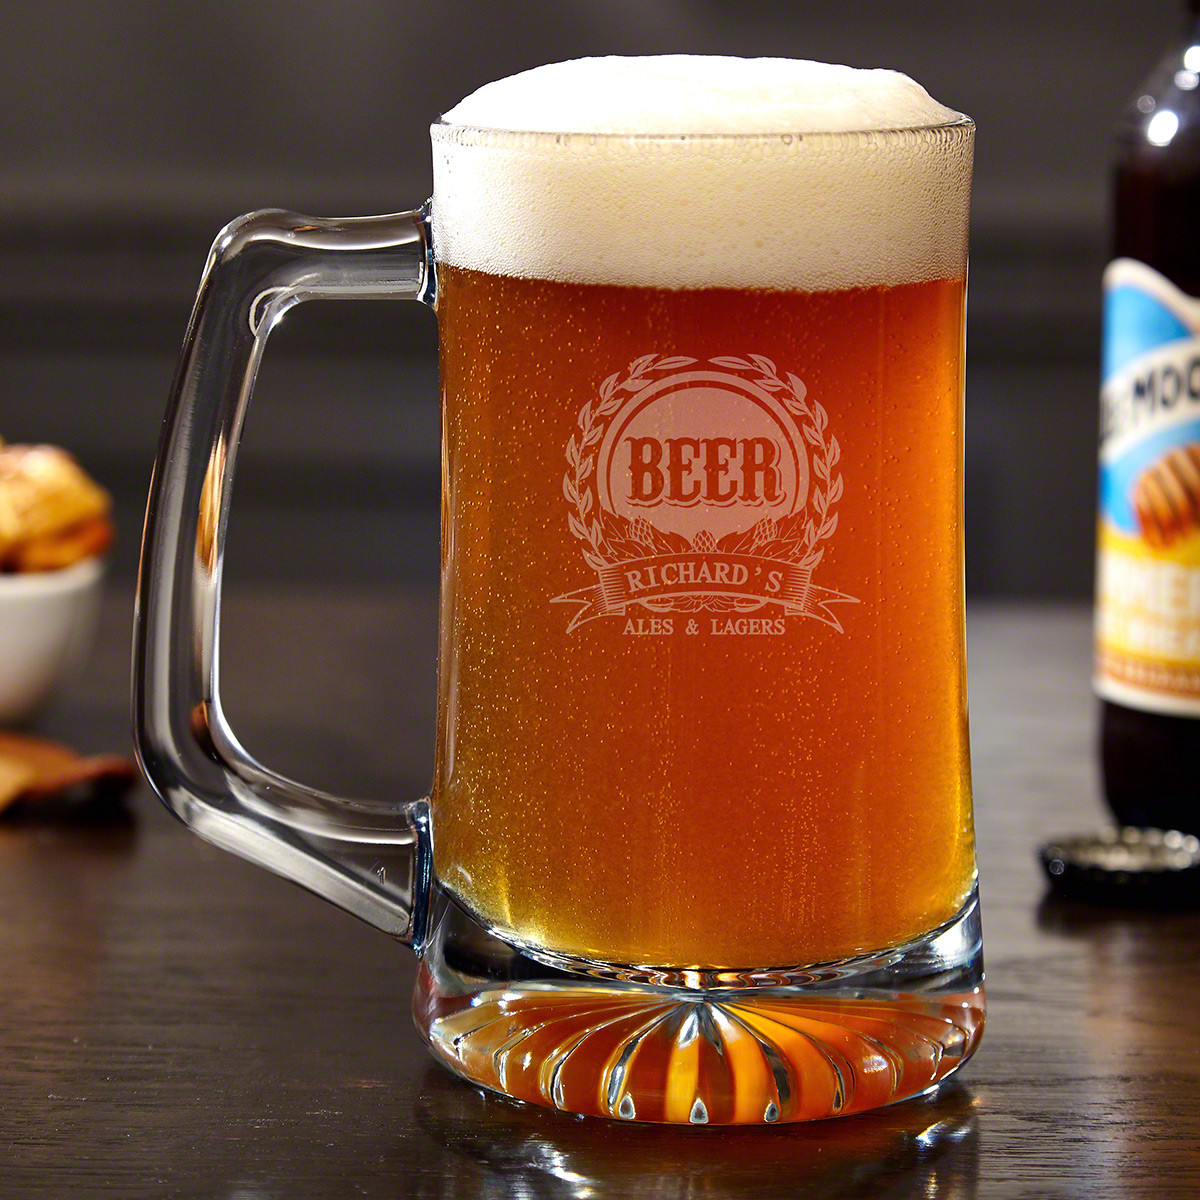 If people want evidence of your good taste in craft beer, give them proof with our Mark of Excellence personalized beer mug. Holding a perfect 15 ounces, these engraved glass mugs are ideal for at home beer tastings, or just enjoying a beer and shot on a #mug